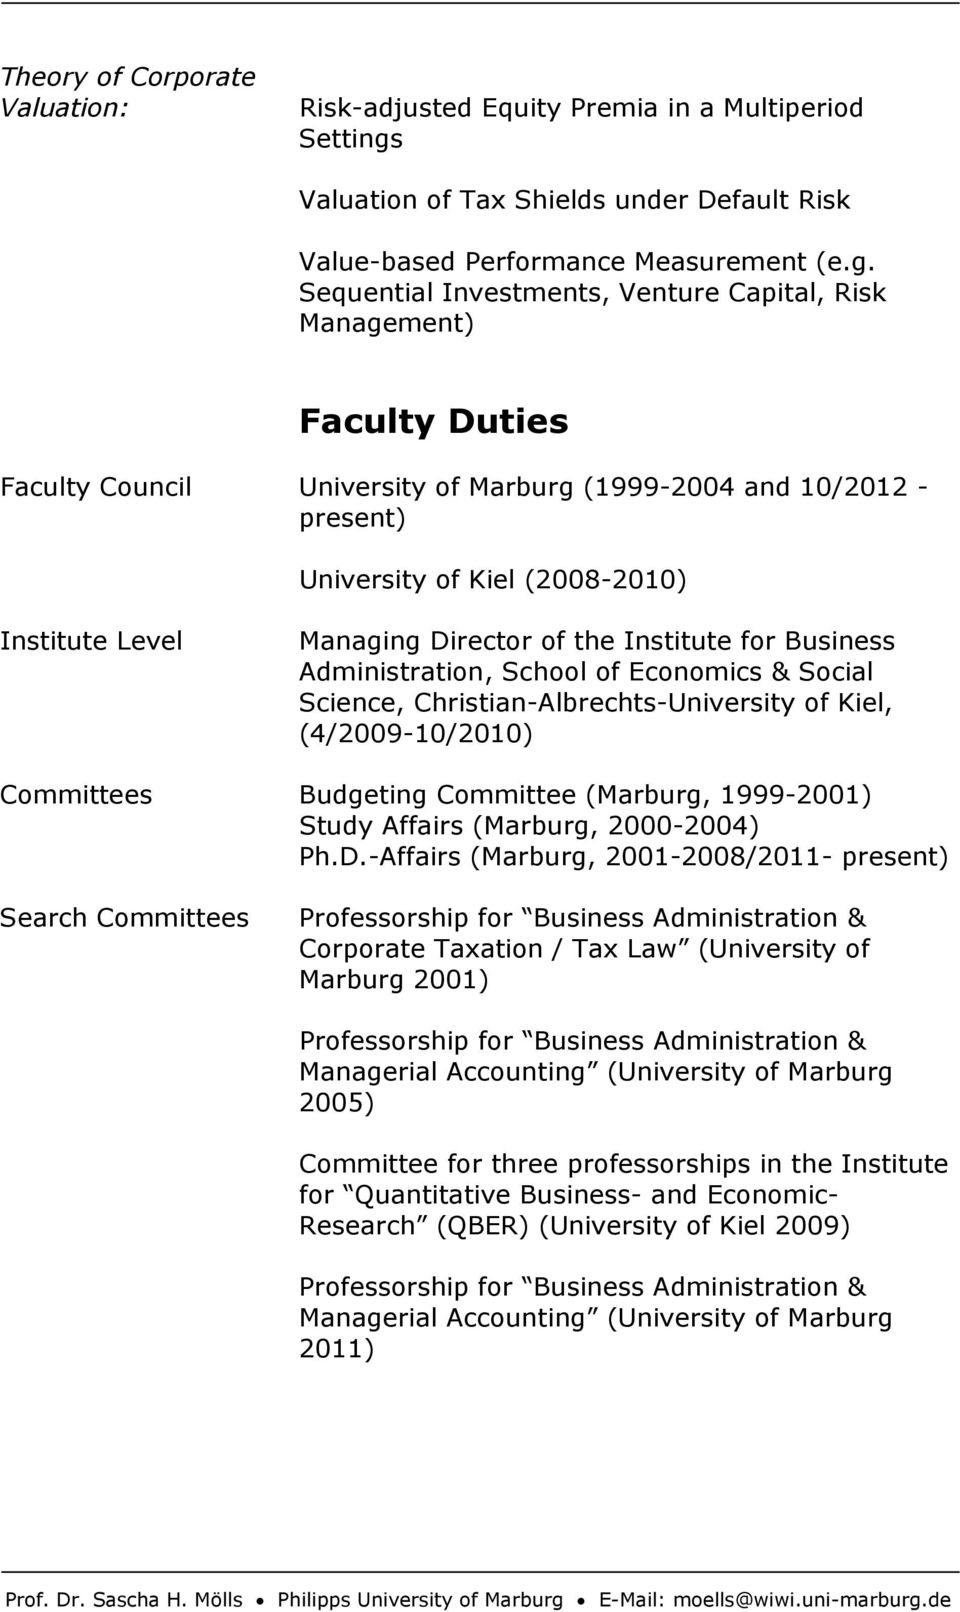 Sequential Investments, Venture Capital, Risk Management) Faculty Duties Faculty Council University of Marburg (1999-2004 and 10/2012 - present) University of Kiel (2008-2010) Institute Level